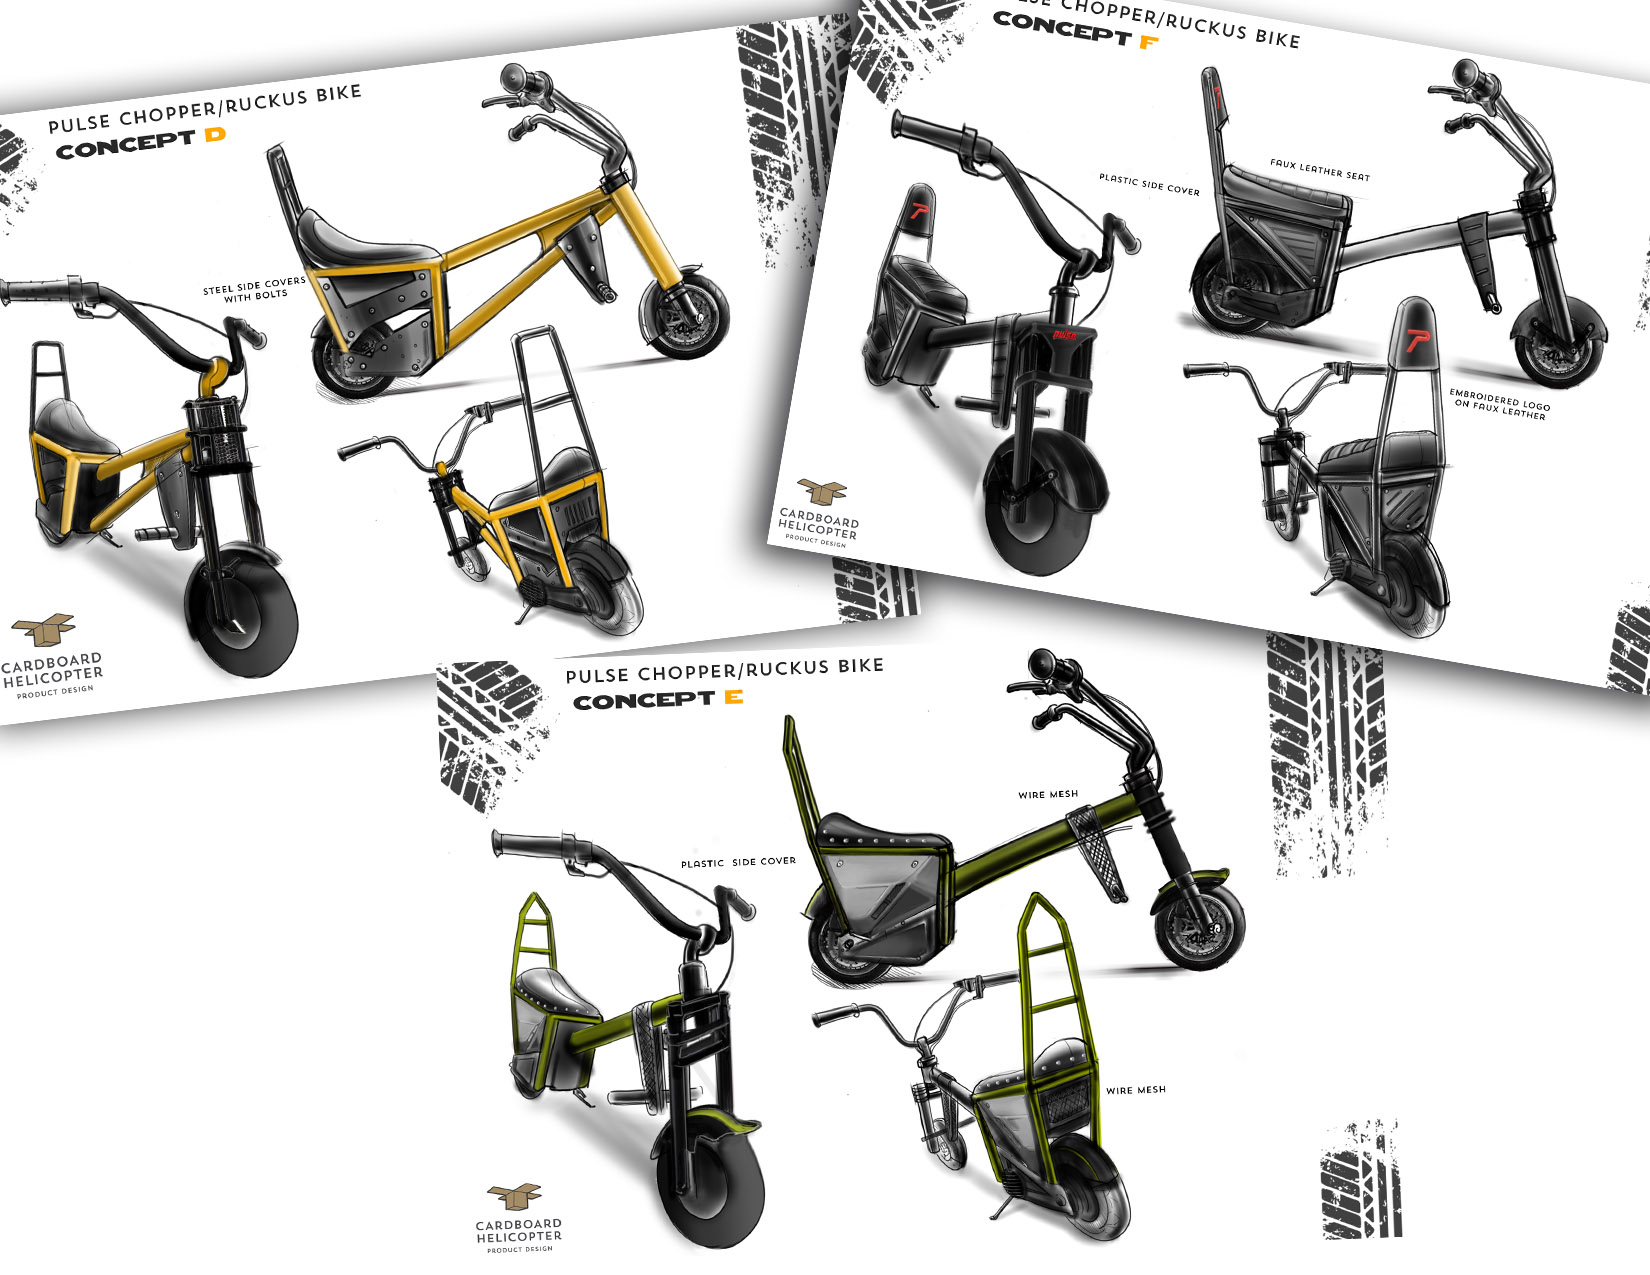 Cardboard Helicopter Product Design Cleveland Ohio Product Development Concept Sketches1.jpg